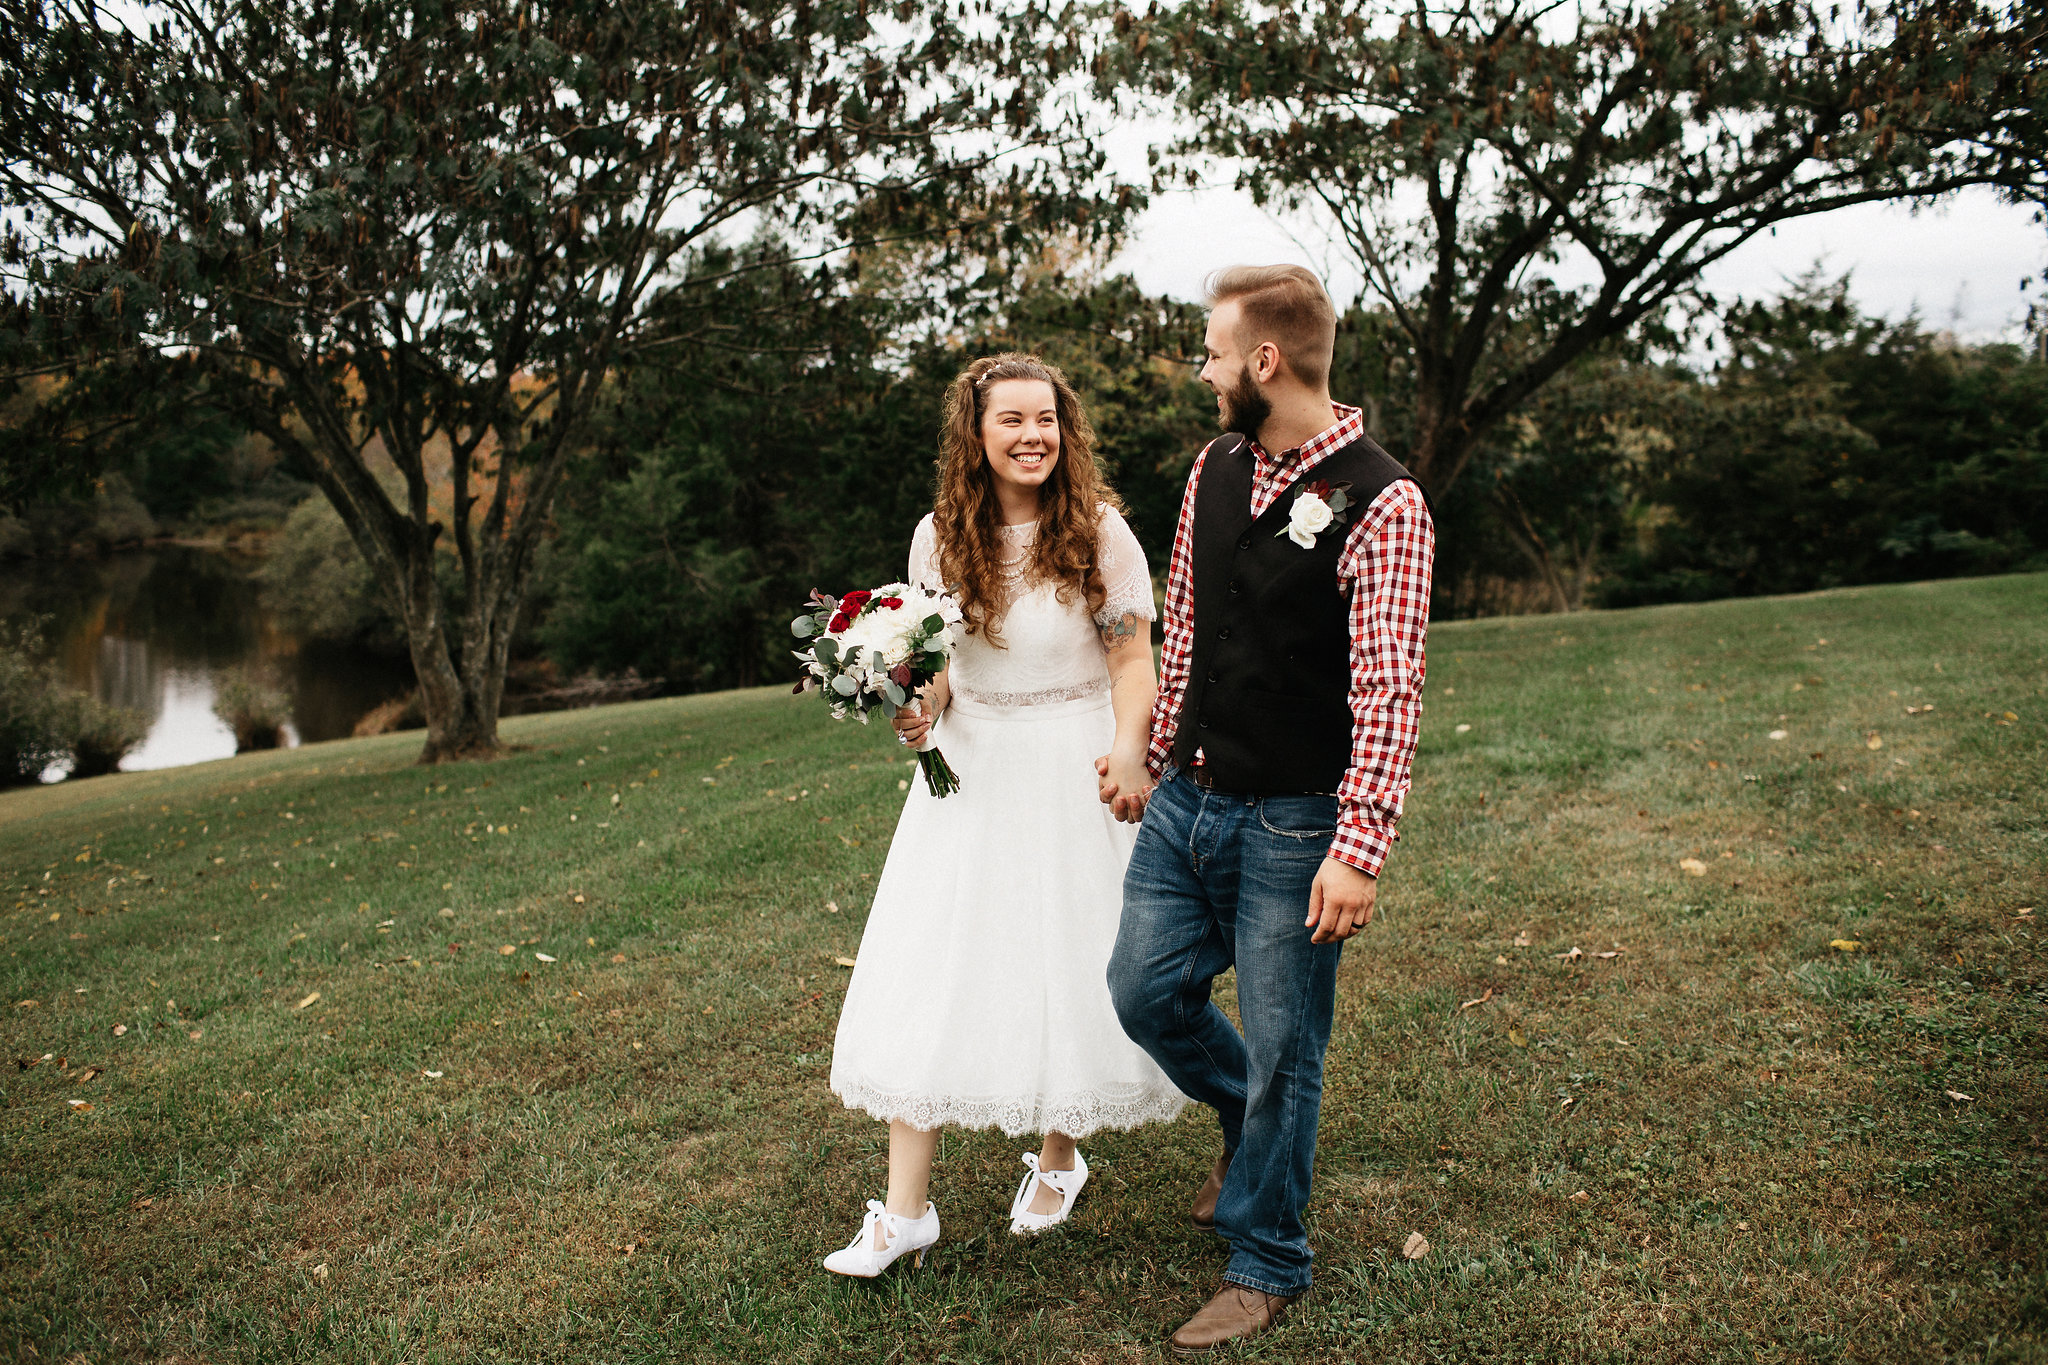 Caitlin&CodyMarried2017-11-03at19.19.39PM55.jpg